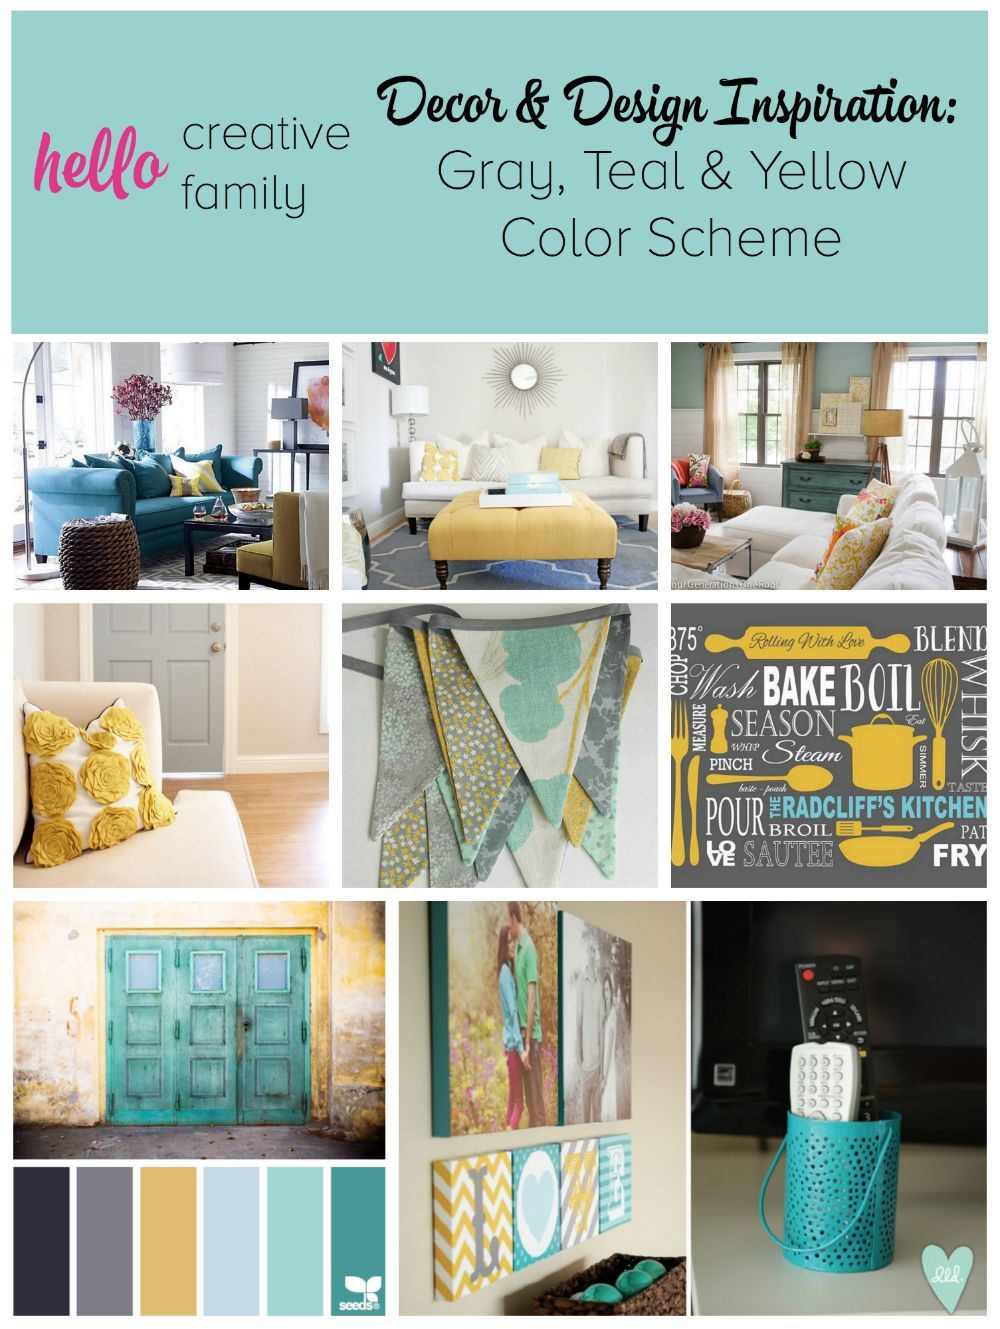 Gray Teal And Yellow Color Scheme Decor Inspiration Teal Living